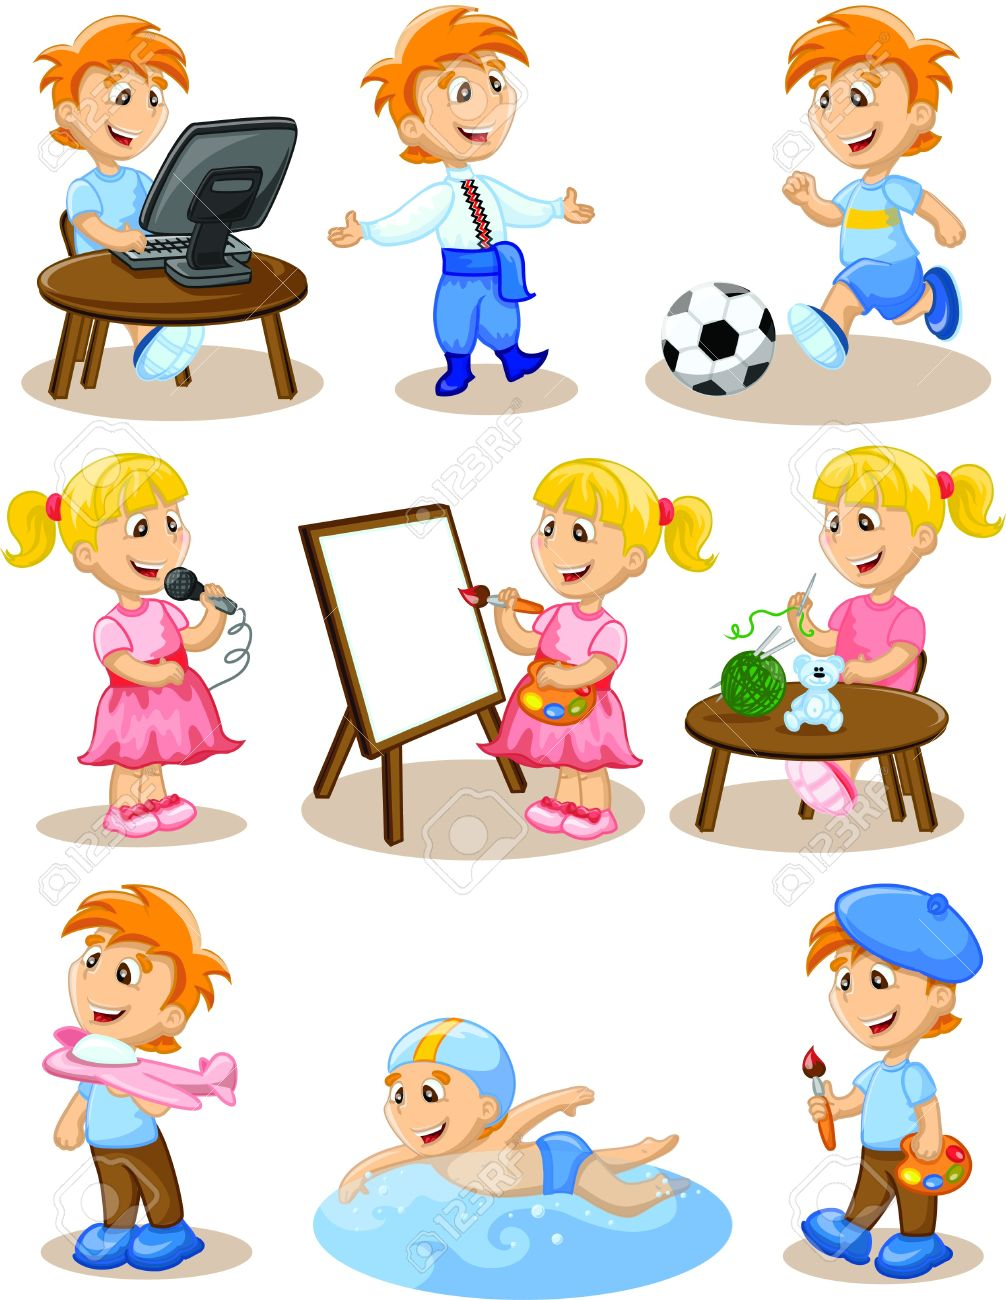 Hobbies clipart 12 » Clipart Station.